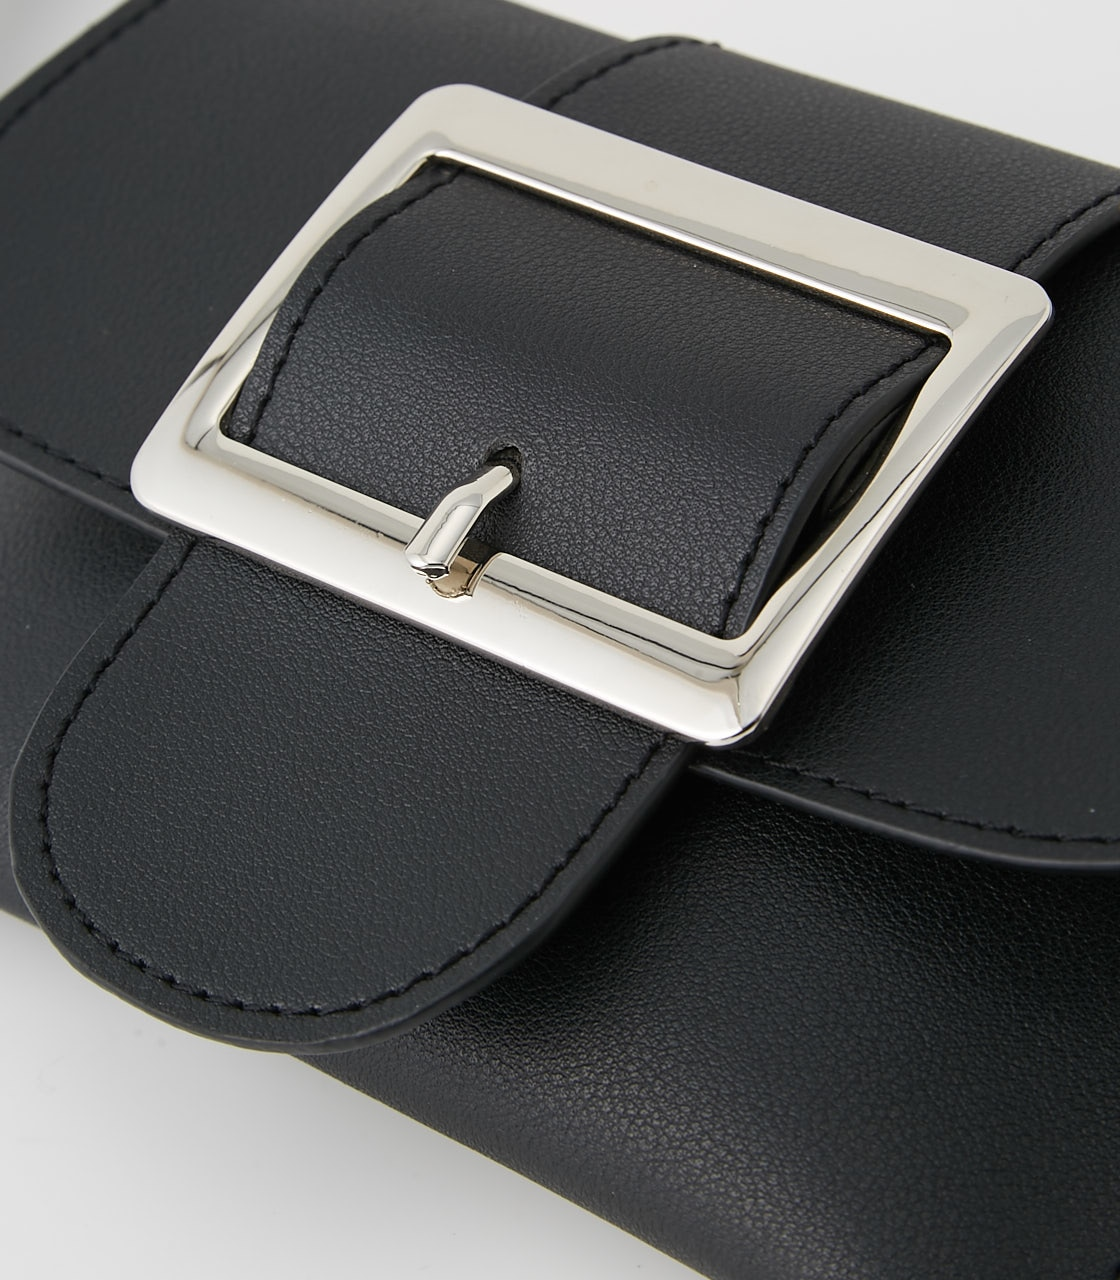 【AZUL BY MOUSSY】SQUARE BUCKLE PORCH SET BELT 詳細画像 BLK 6